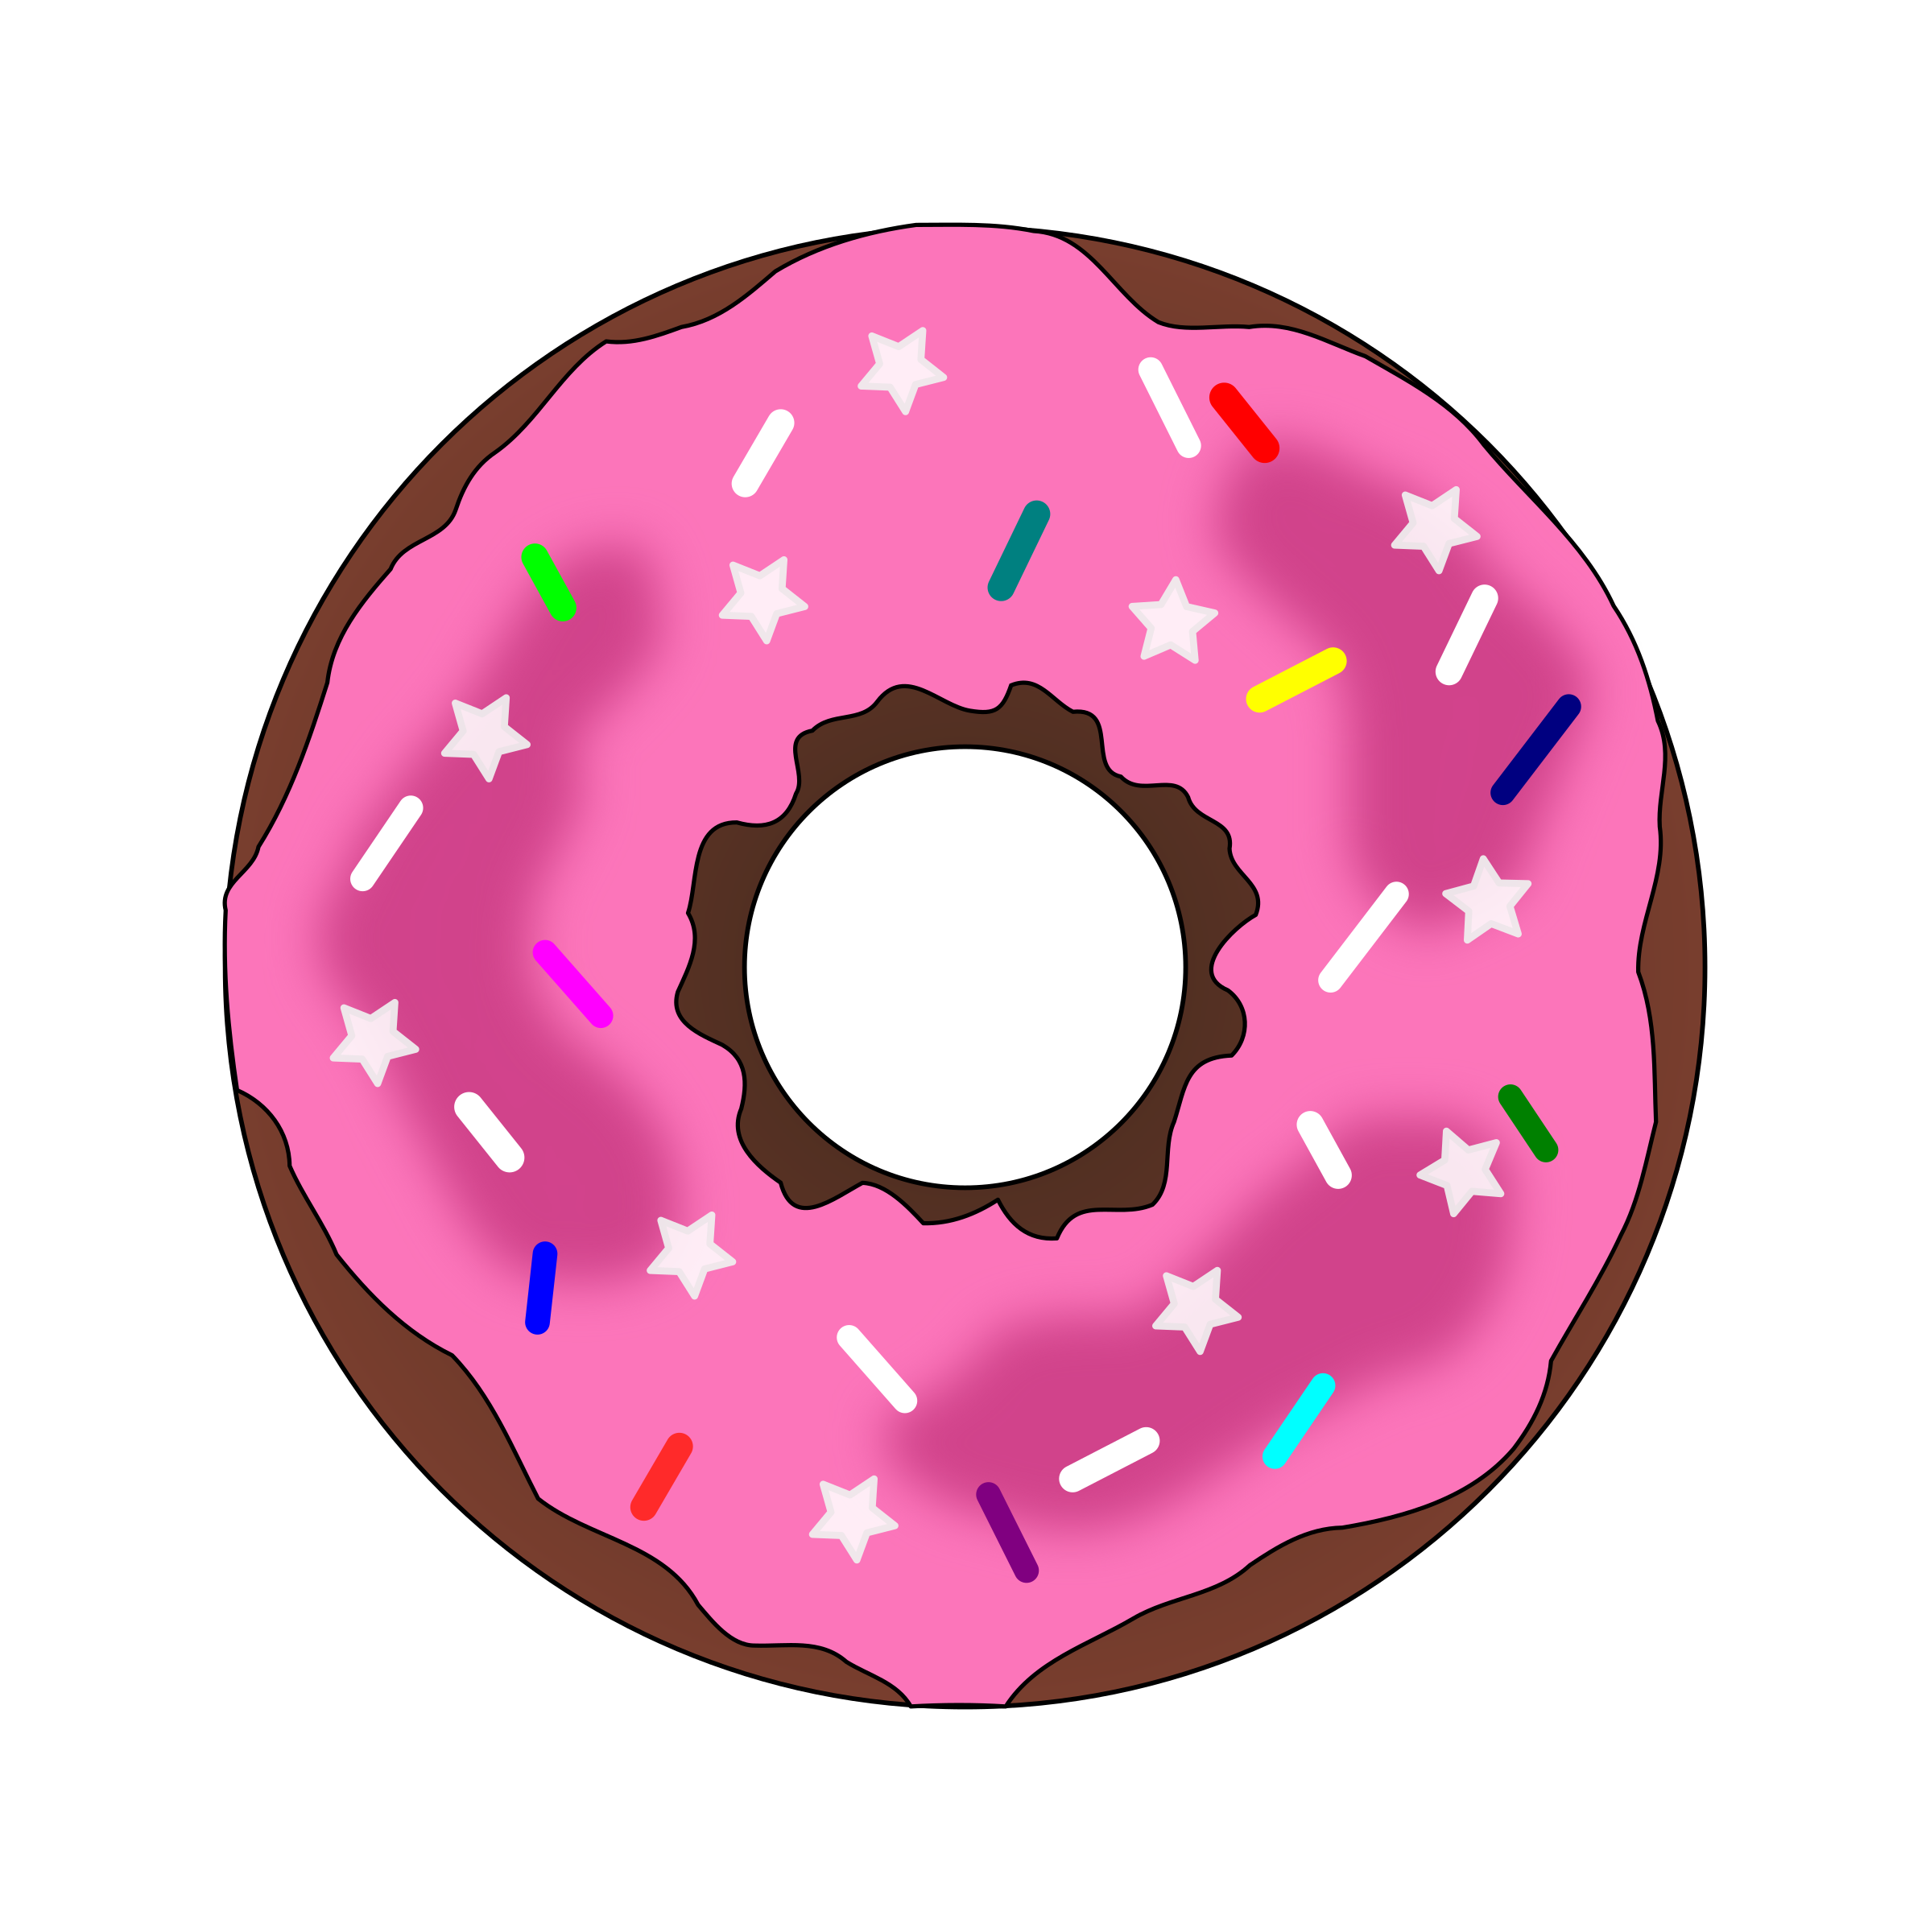 Donut, Doughnut PNG images free download.